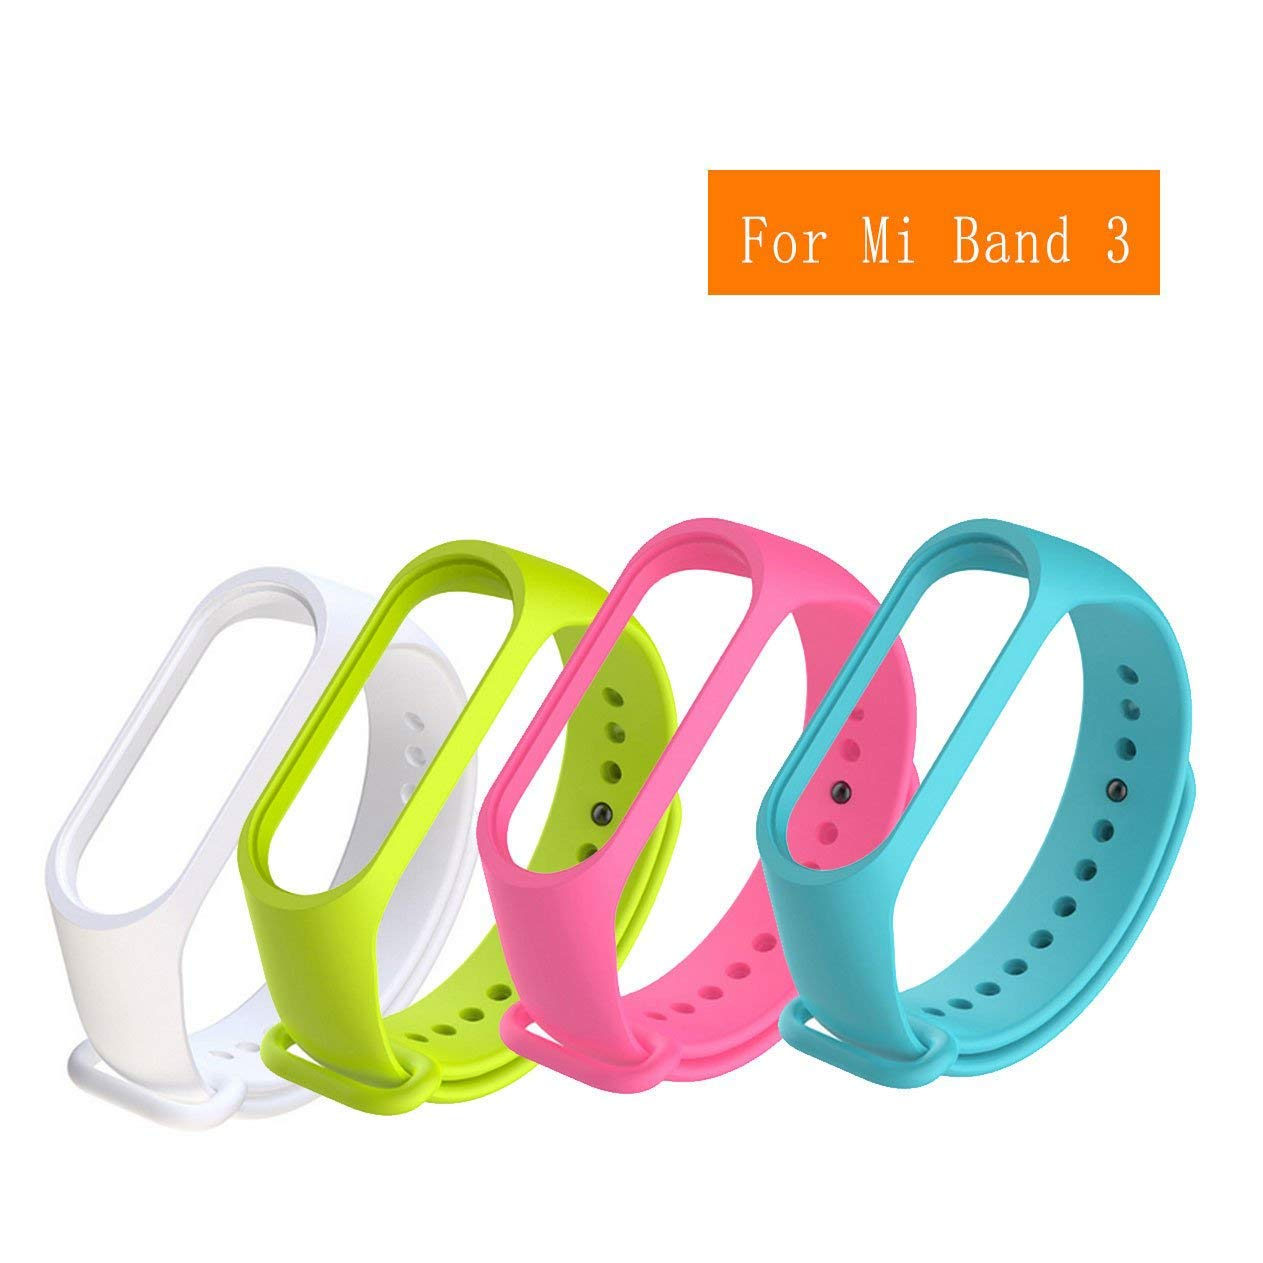 4pack Compatible Xiaomi Mi Band 3 Bracelet Silicon Oled Display Free Screen Guard Sport Replacement Strap Wristband Accessories Colorful